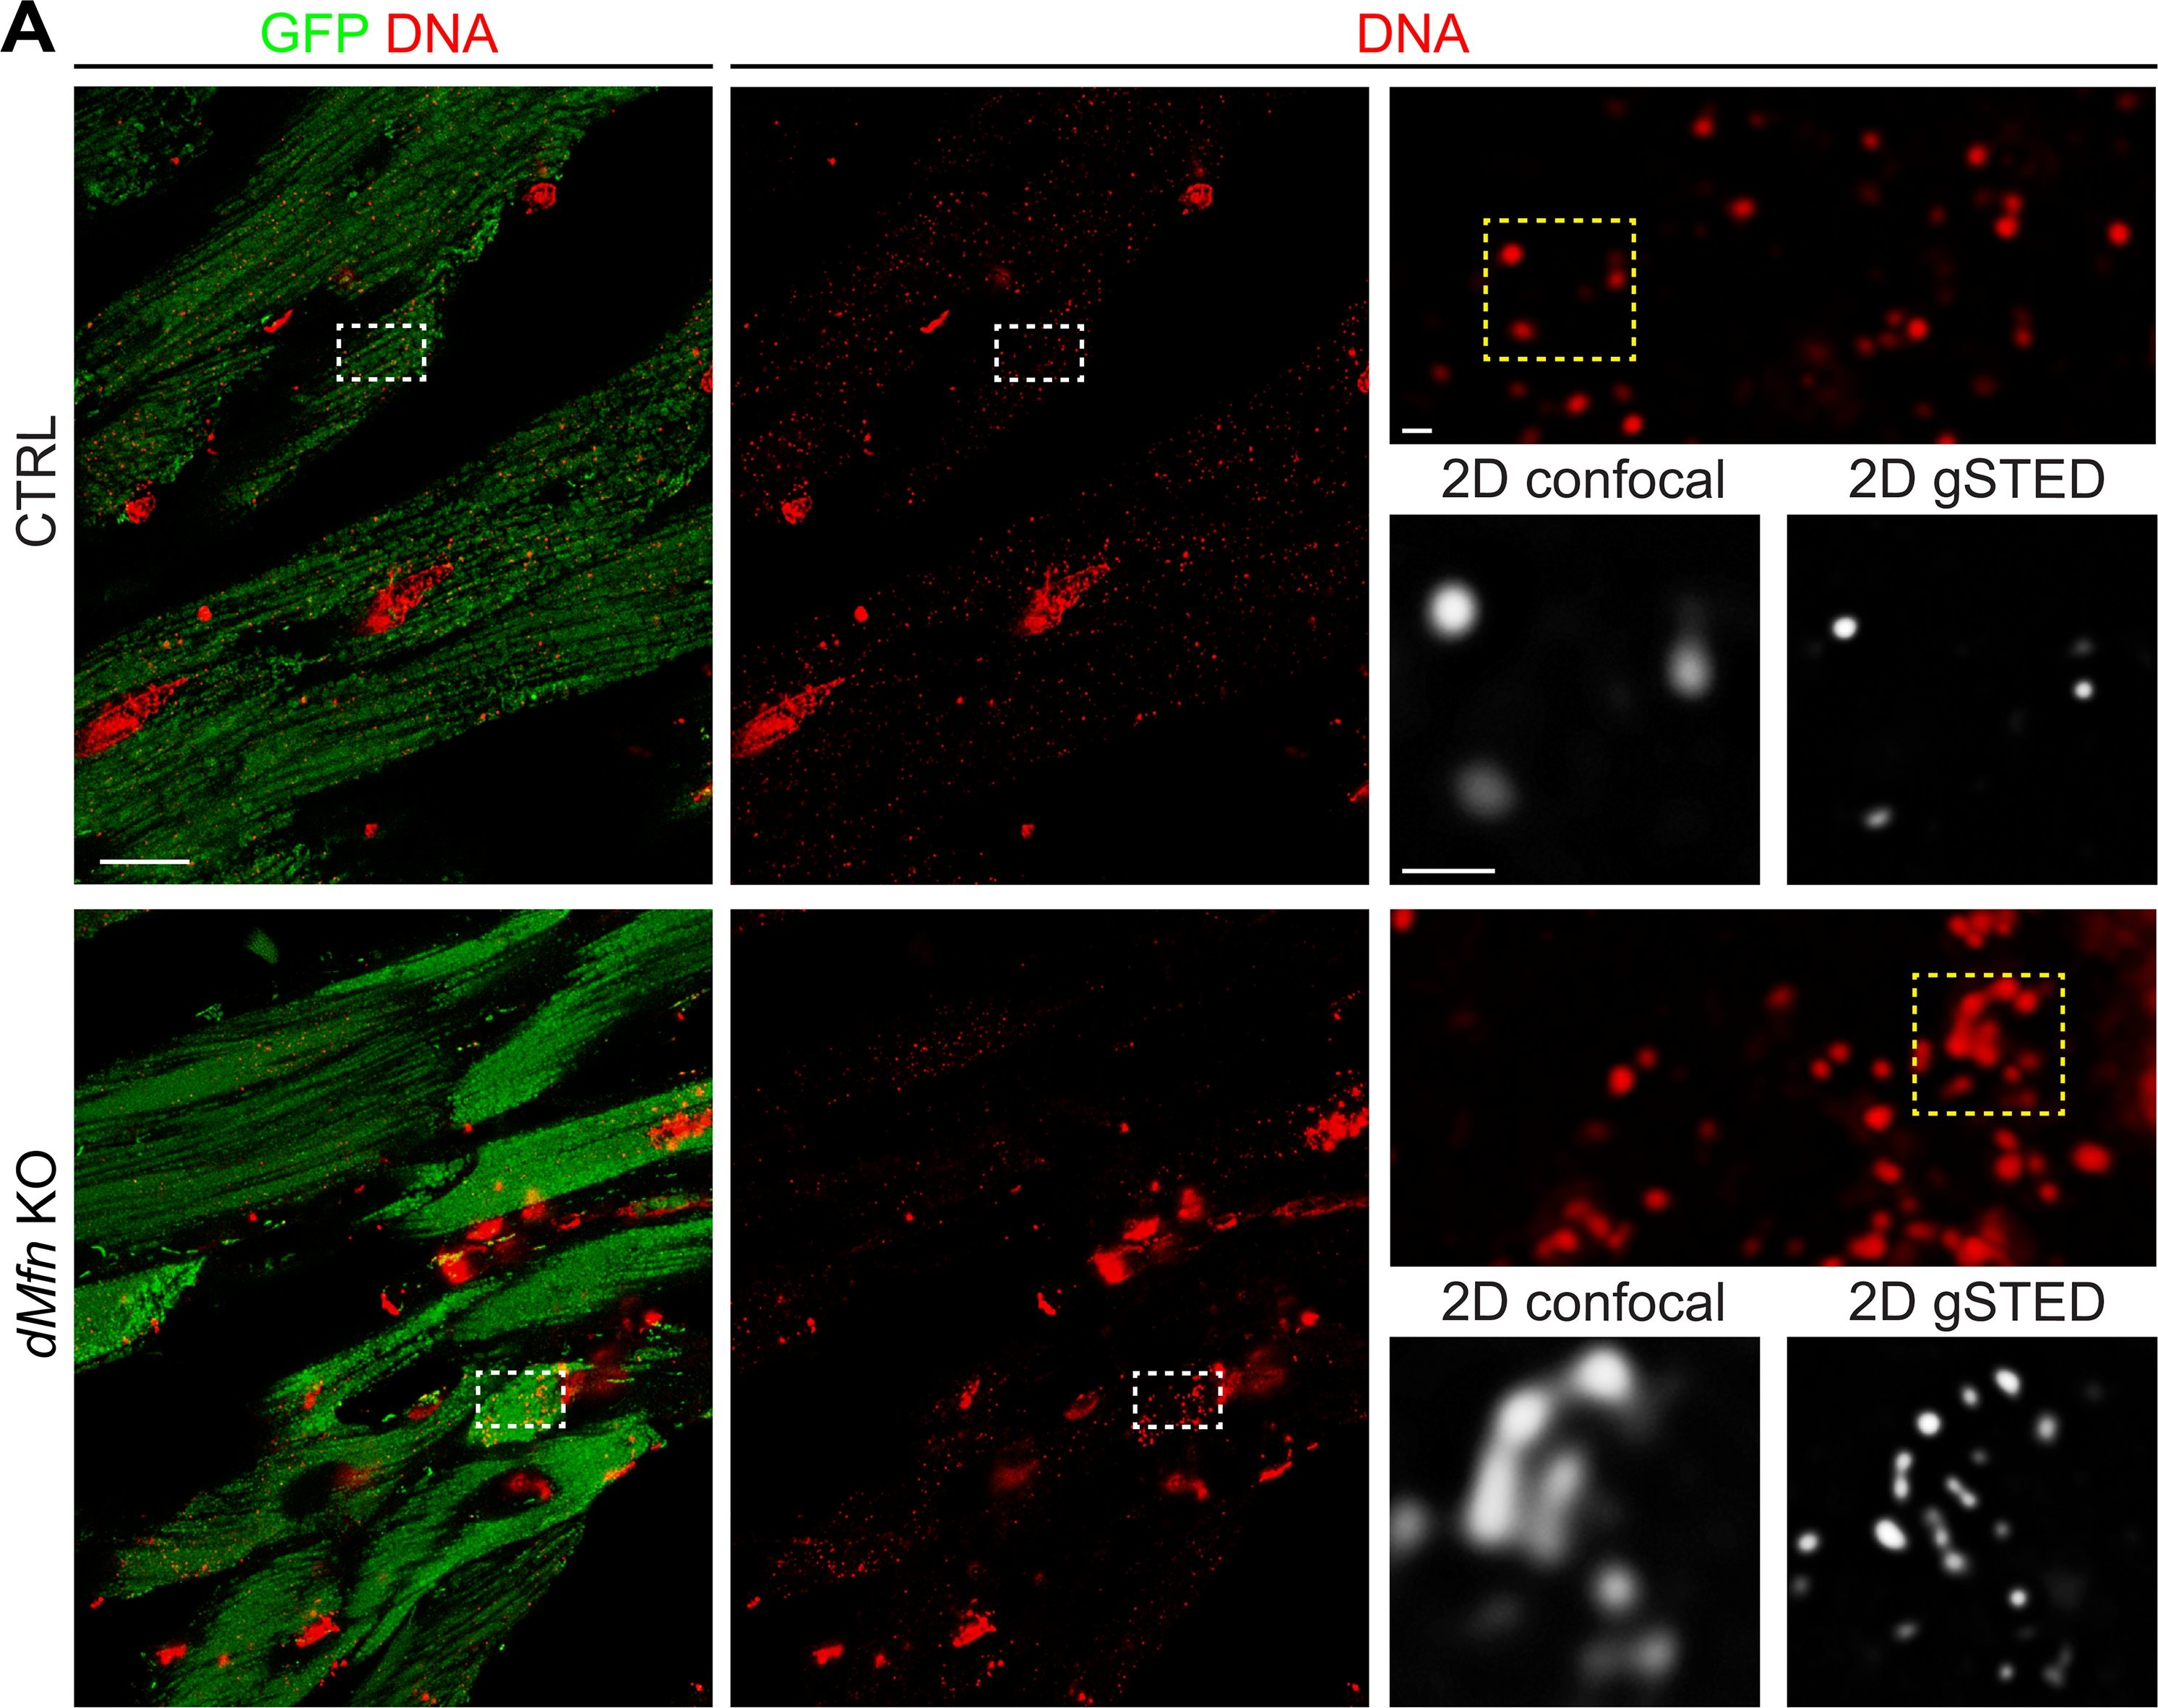 Mitochondrial fusion is required for regulation of mitochondrial DNA replication.